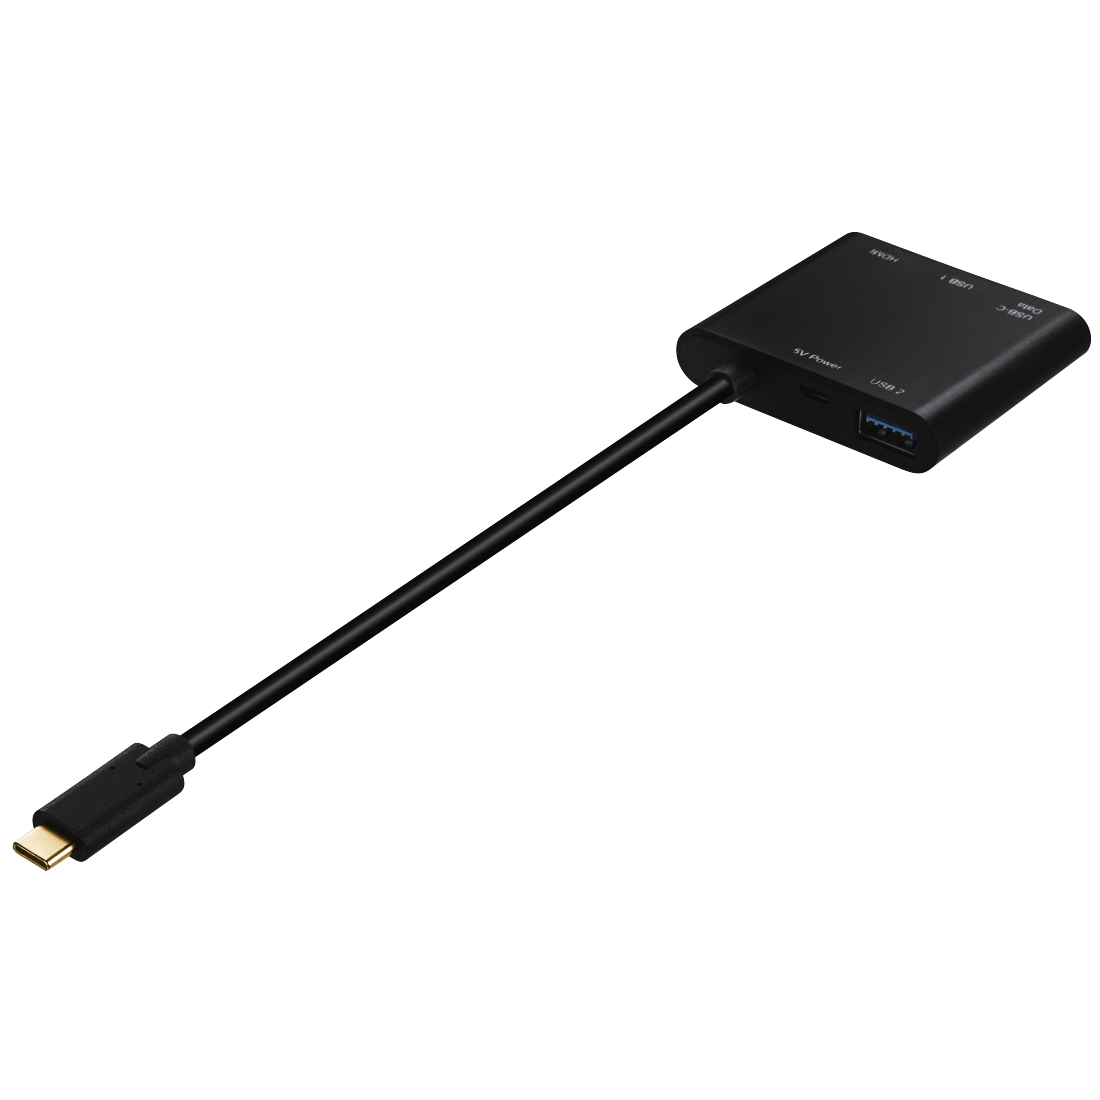 abx3 High-Res Image 3 - Hama, 4in1-USB-C-multiport-adapter voor 2 xUSB 3.1, HDMI™ en USB-C (gegevens)